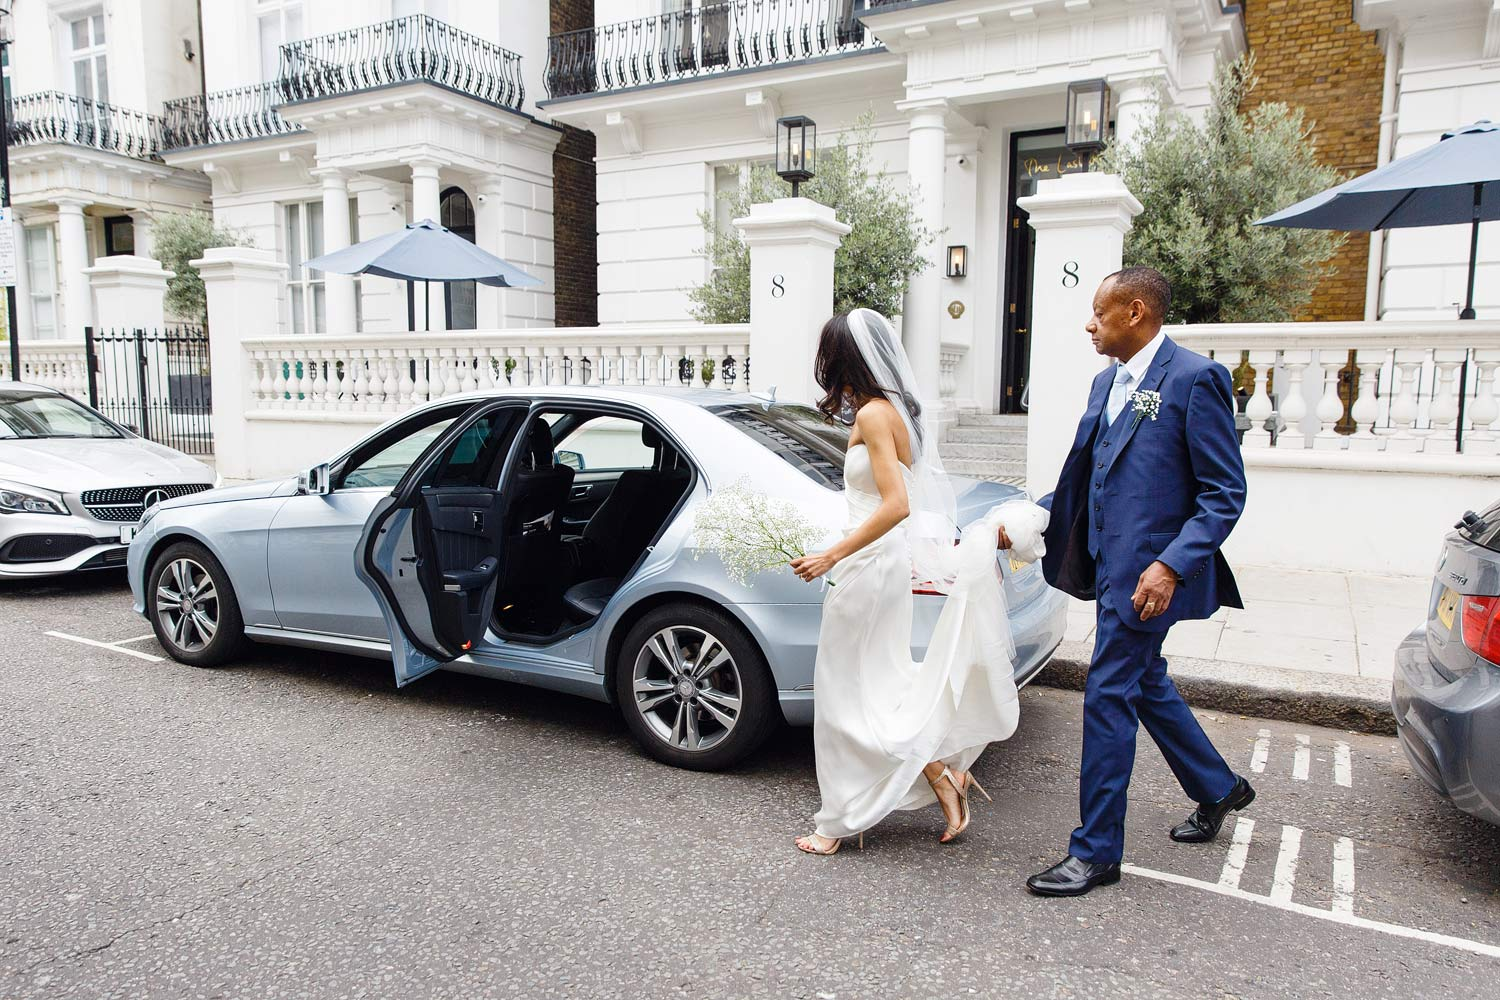 A bride gets into the bridal car with her father at The Laslett Hotel in London - wedding photographer